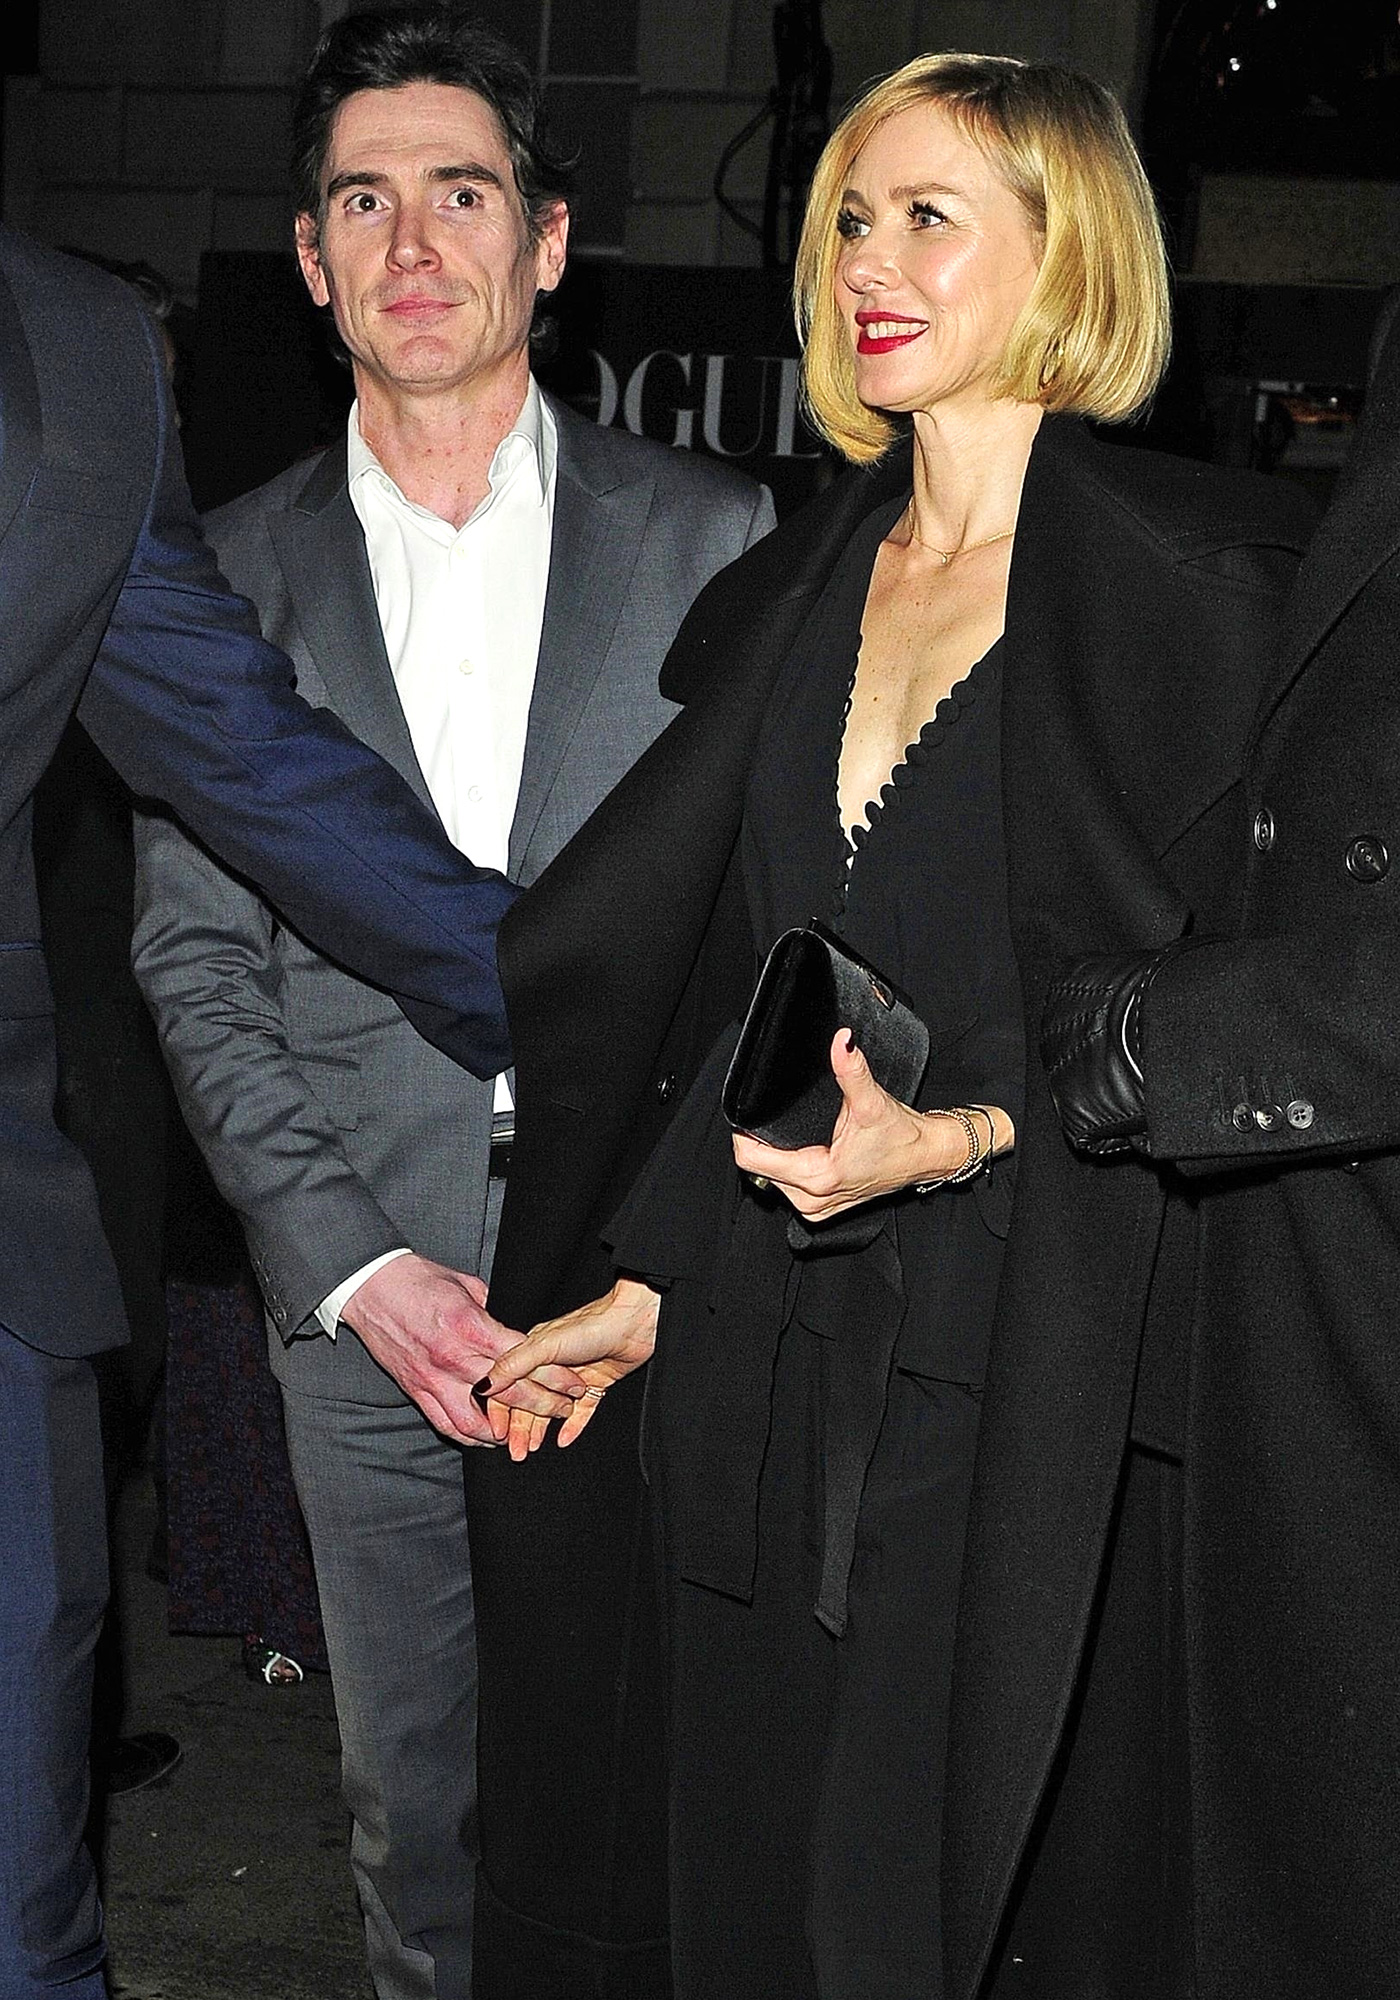 Naomi Watts and Billy Crudup leaving the Vogue X BAFTA afterparty held at Annabel's